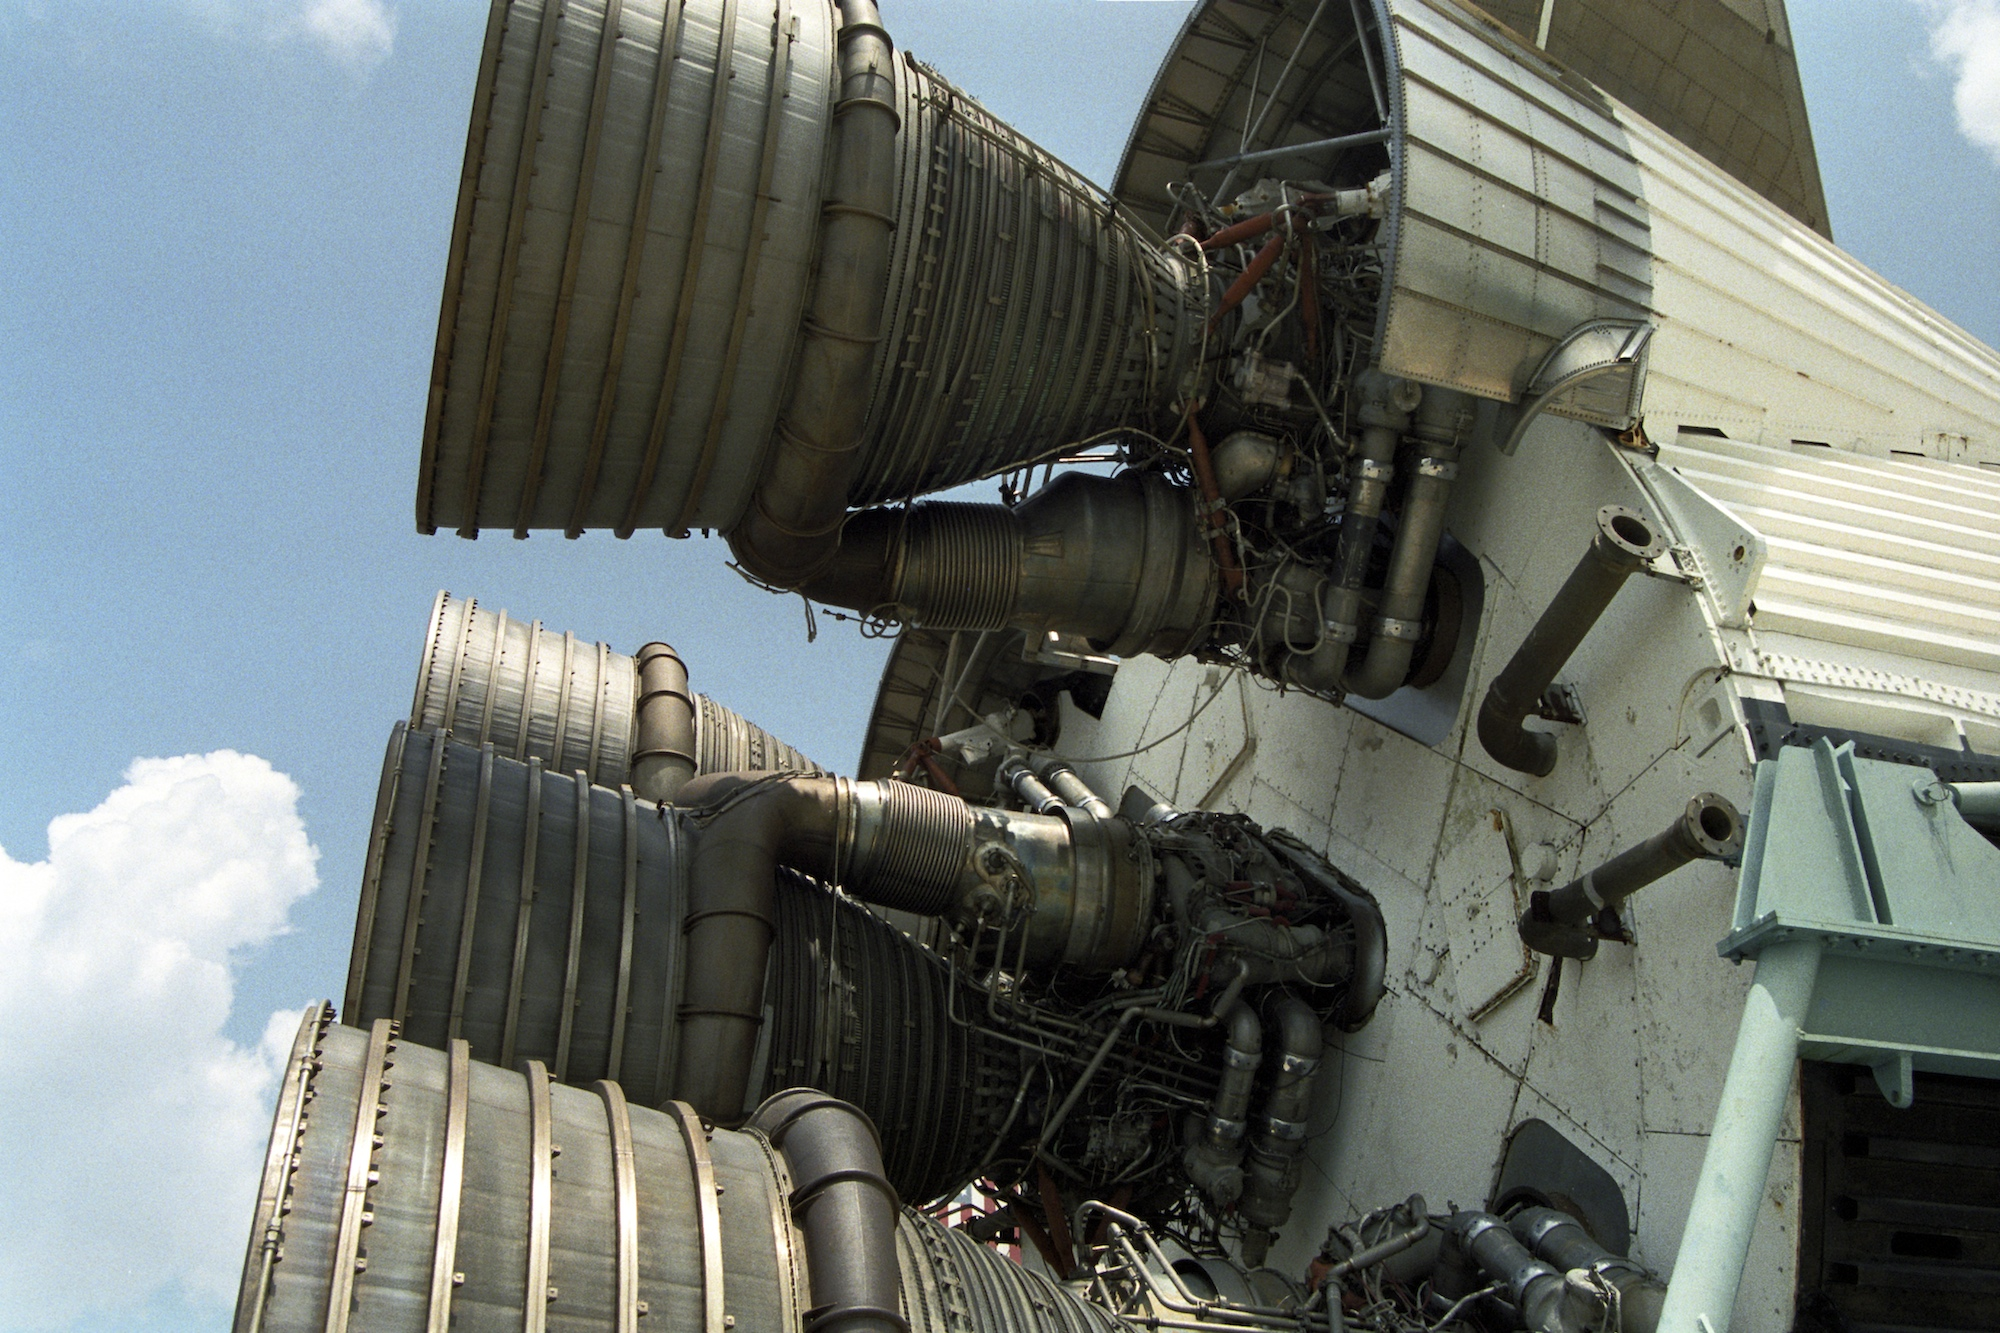 Saturn_V_Rocket_S-IC_-_1992.jpg